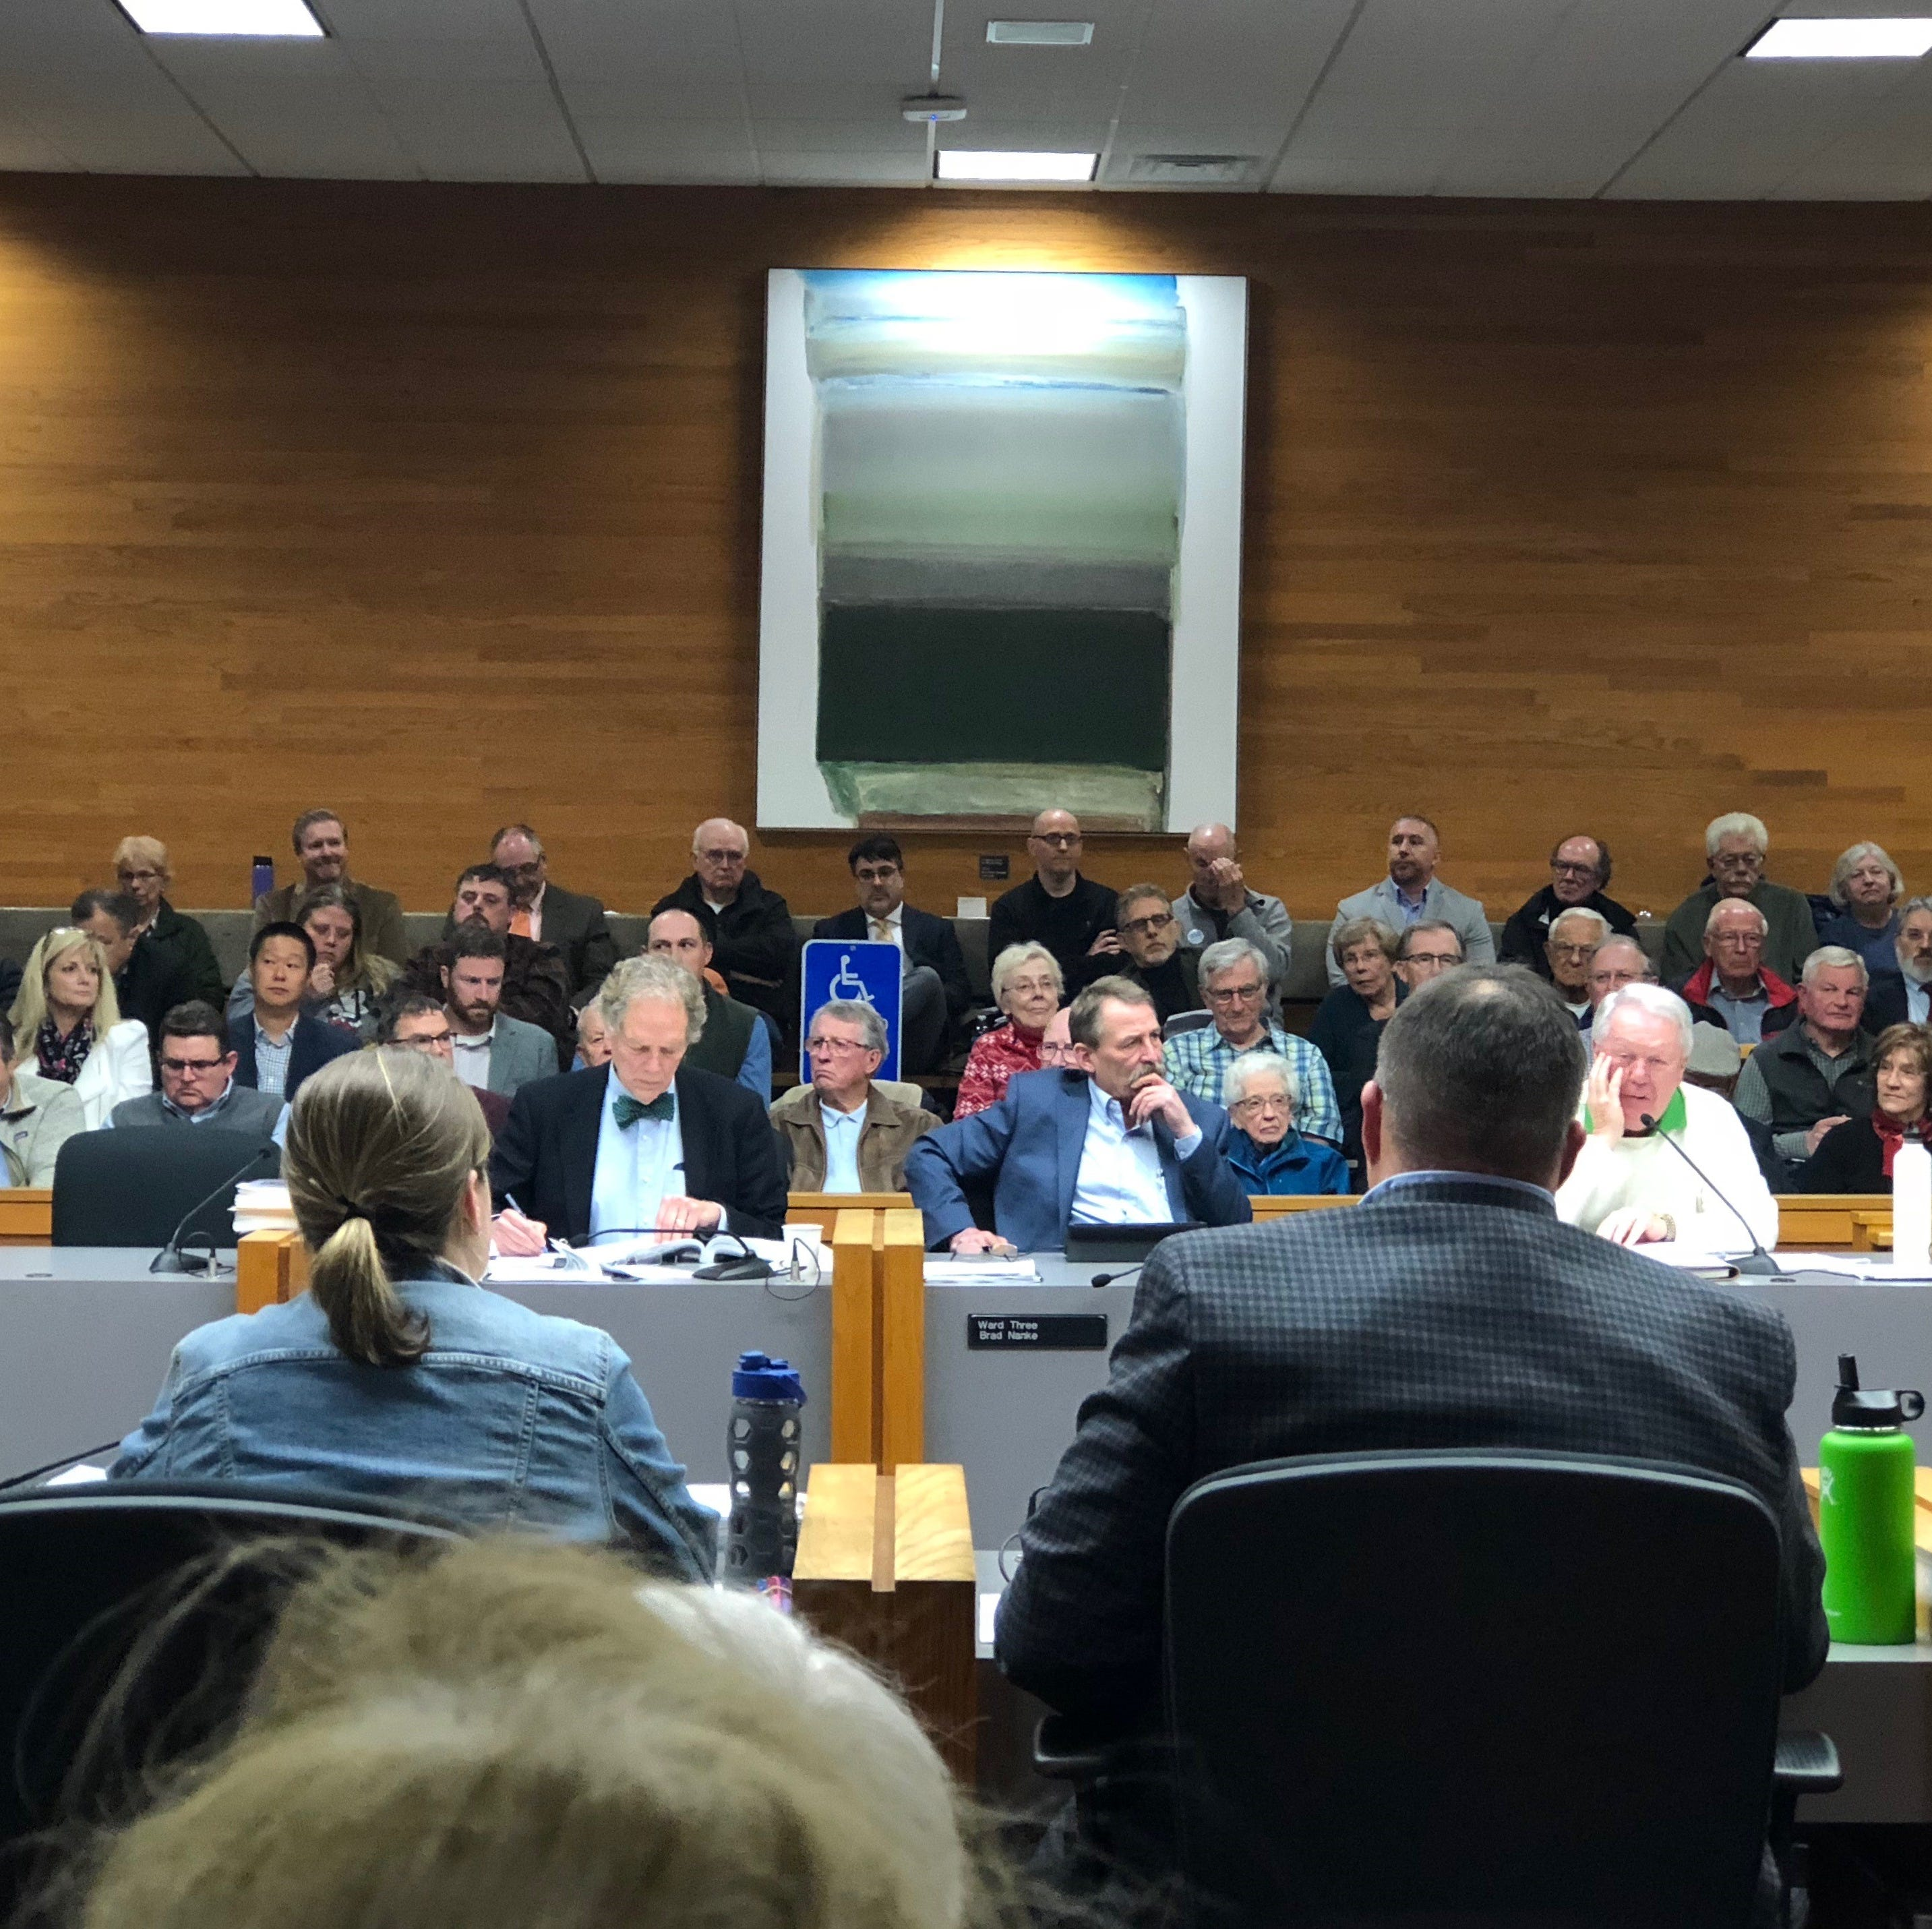 Members of the public fill Salem council chambers on Monday, Dec. 10, 2018. The Salem City Council heard testimony on plans to develop a 24-acre shopping center in Southeast Salem.